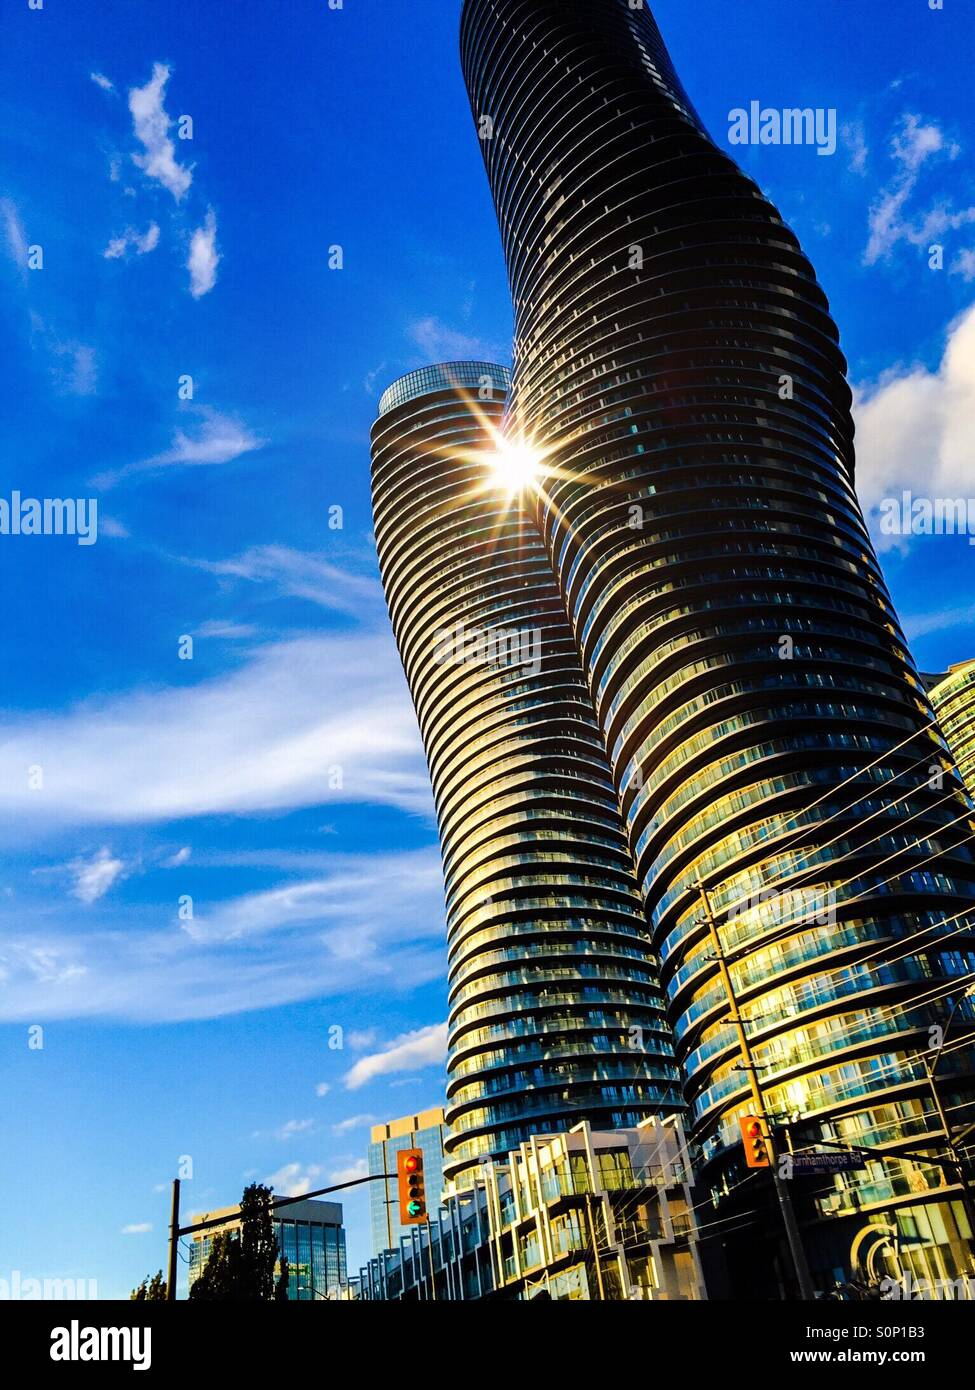 Modernity with a flare - Stock Image